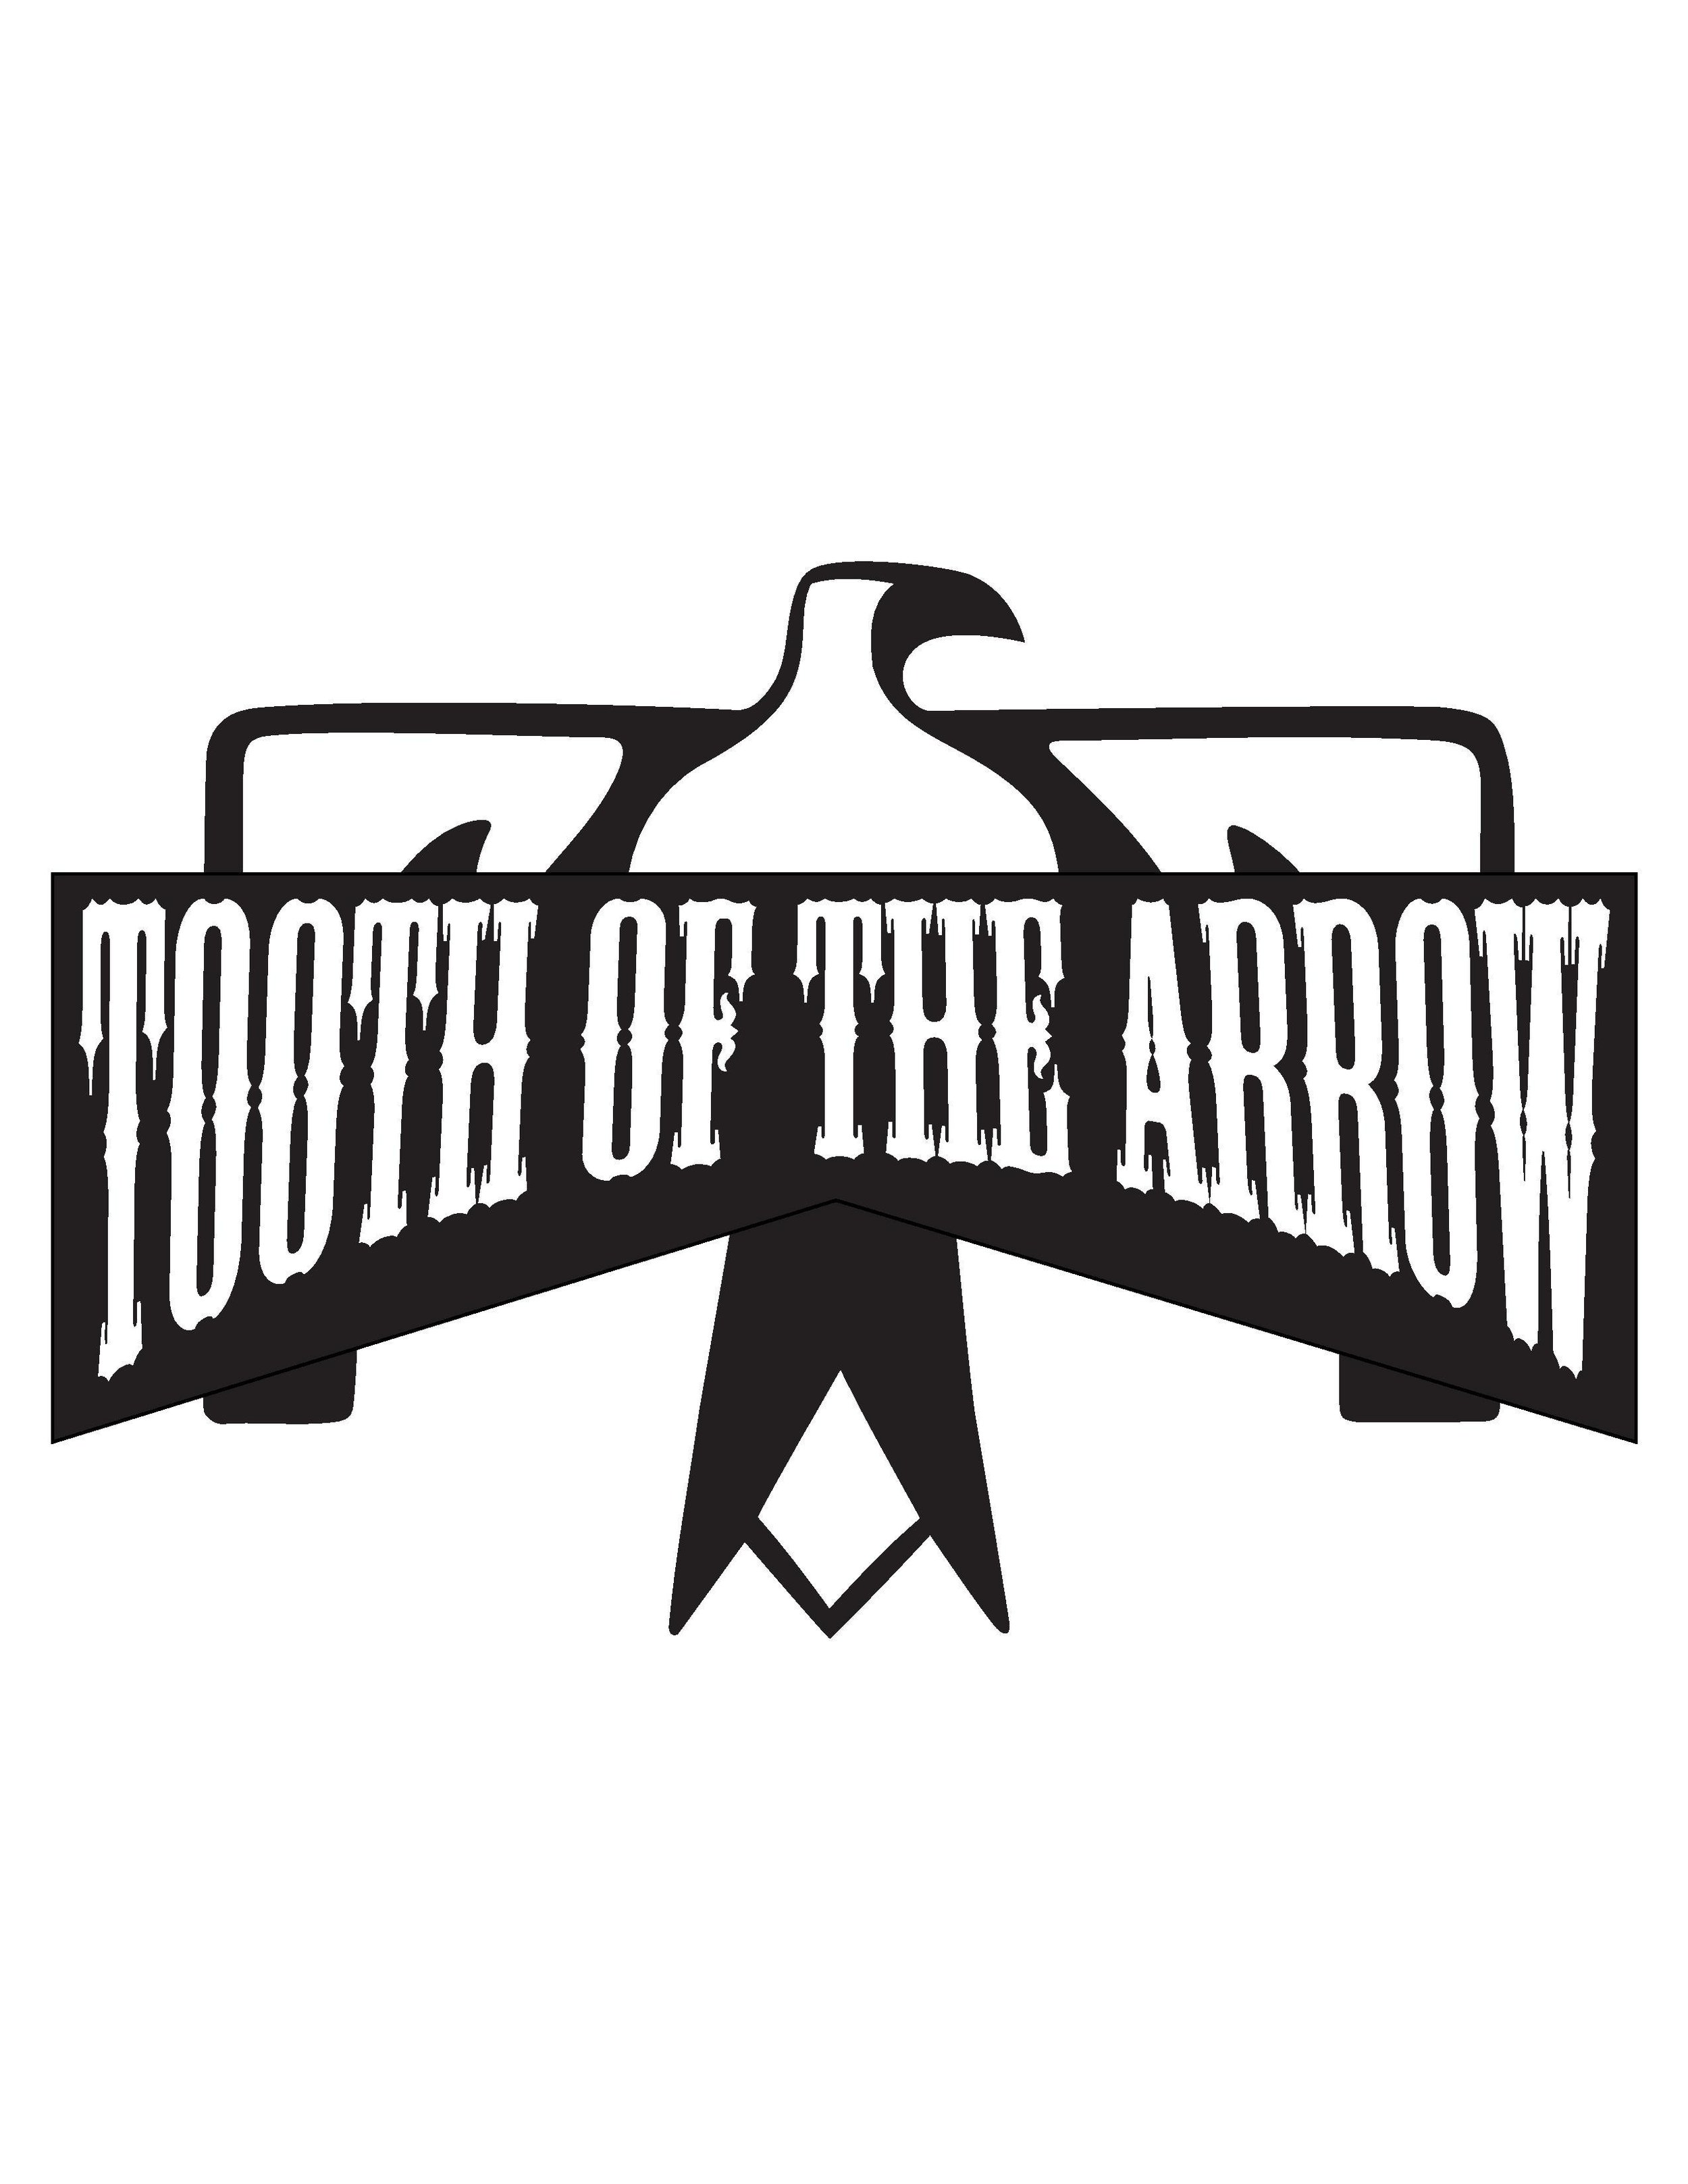 tooth-of-the-arrow-logo-final_2550x.jpg